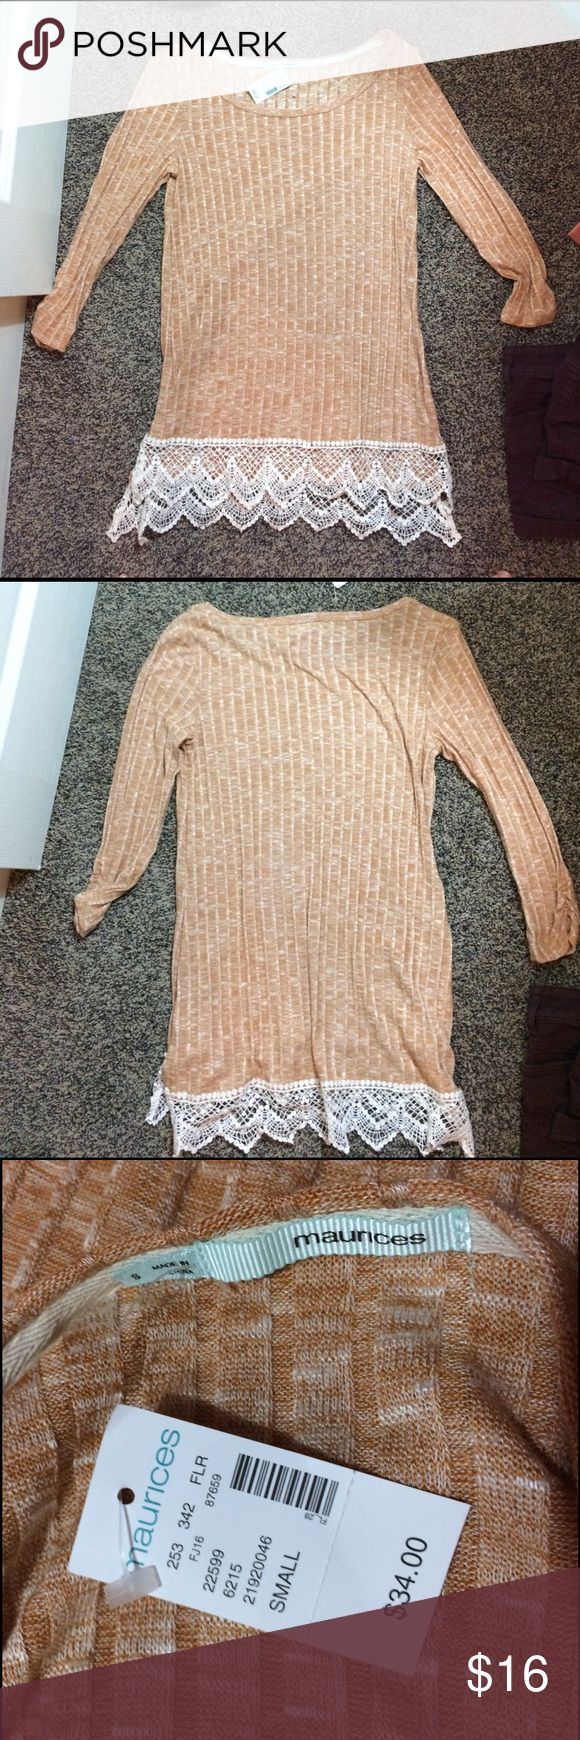 Never Worn Peach Colored Tunic from Maurice's A cute and long peach top from Maurice's in Women's size S. Too big for me and lost the receipt! Never worn! Maurices Tops Tunics